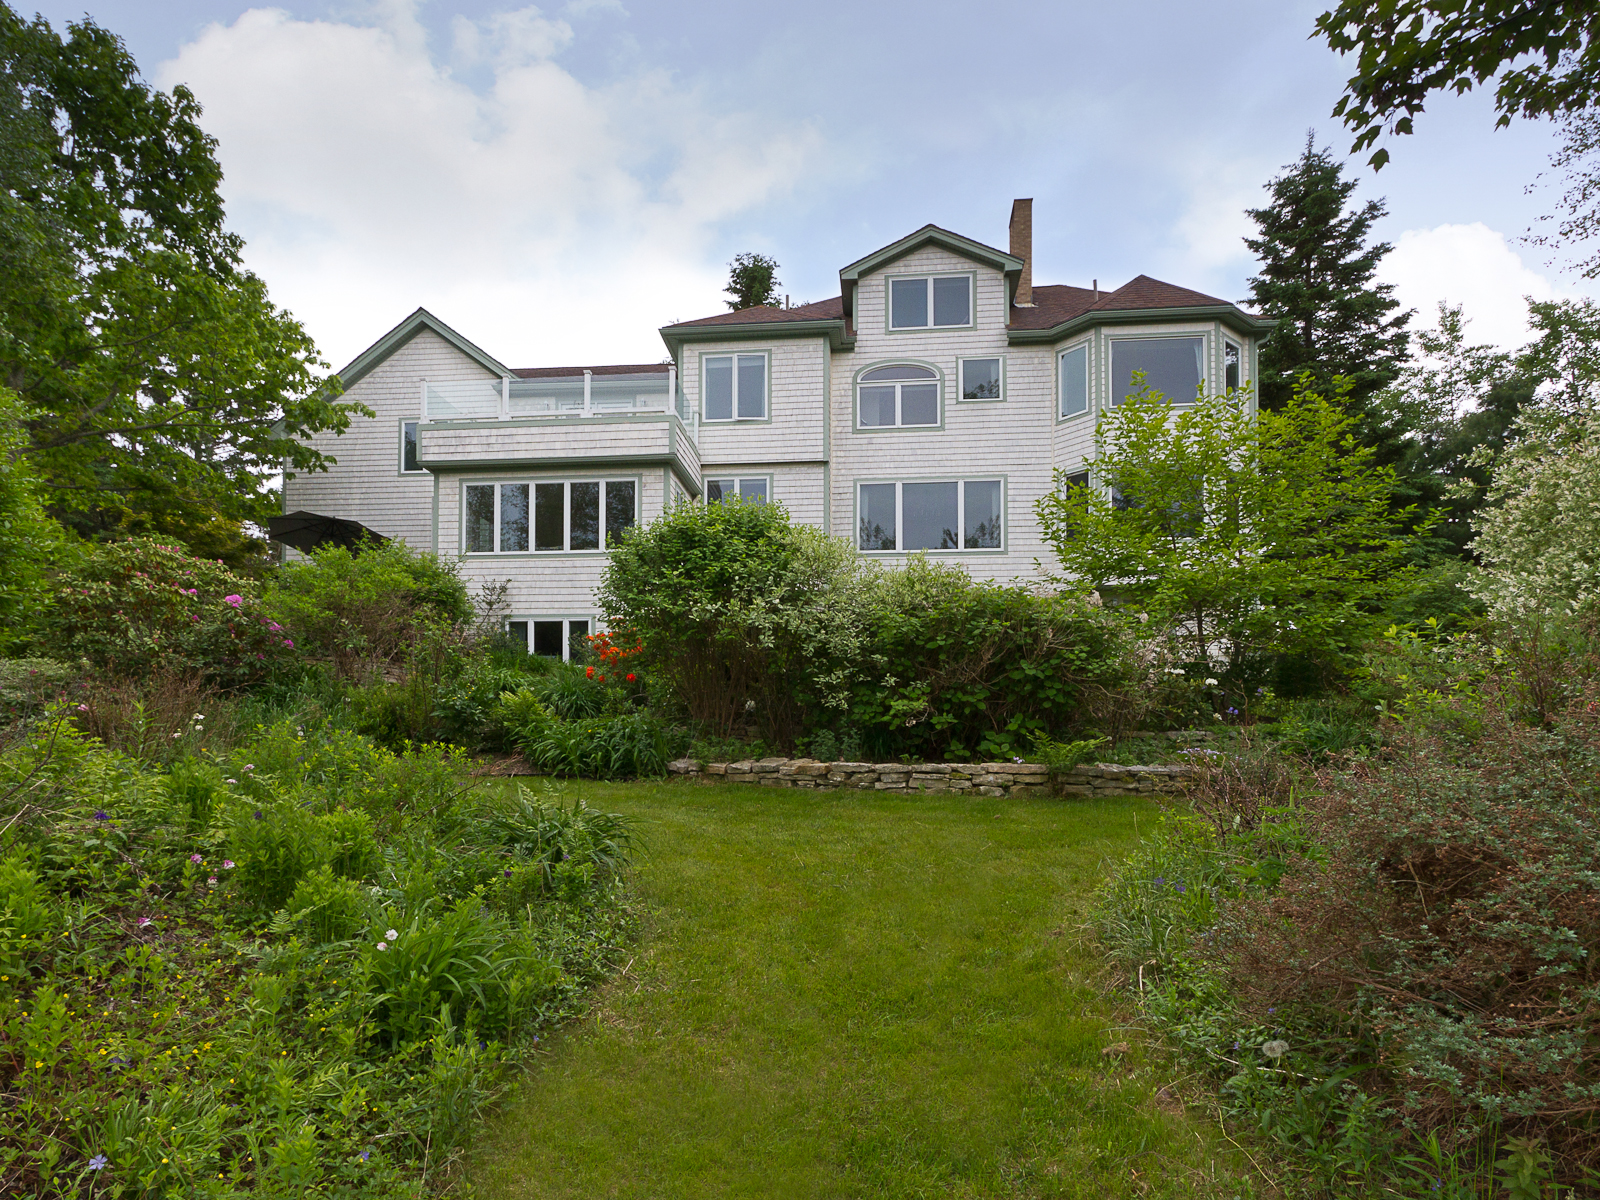 Single Family Home for Sale at Eden Street 1331 Bar Harbor Road Bar Harbor, Maine 04609 United States